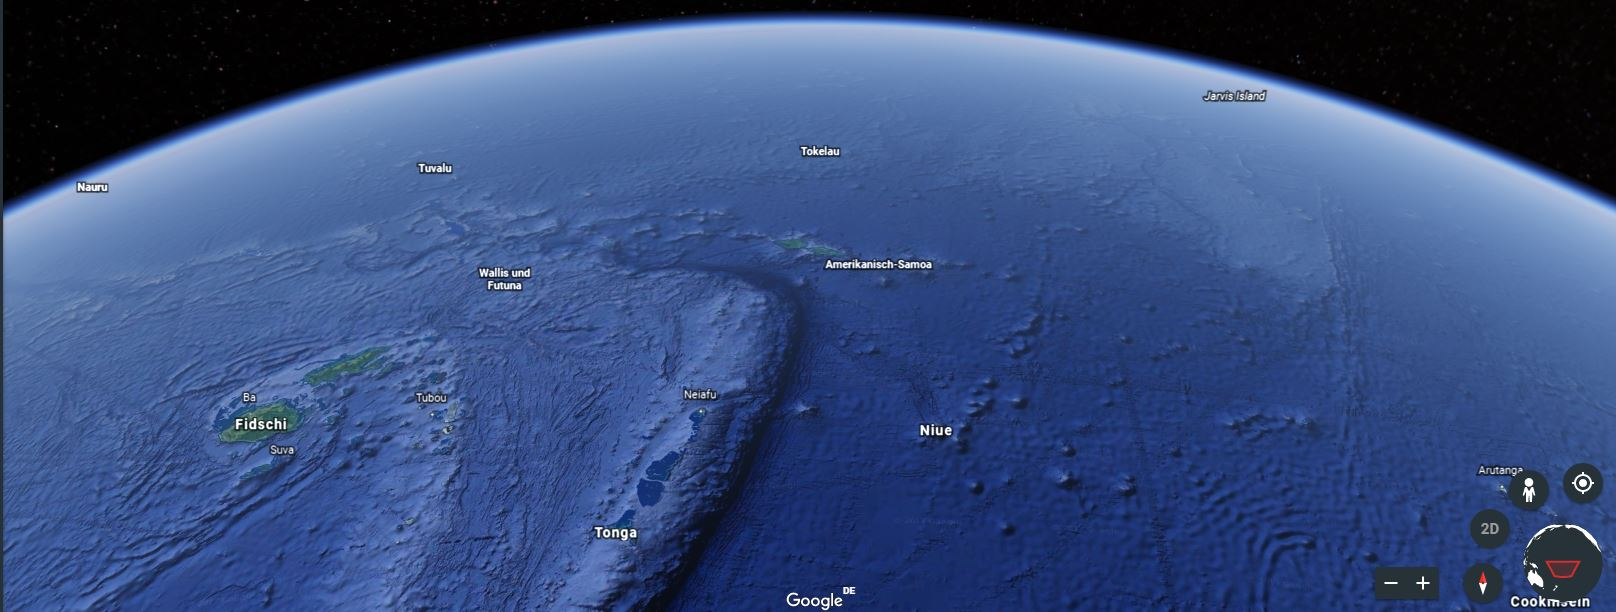 Quelle: Google Earth Tokelau